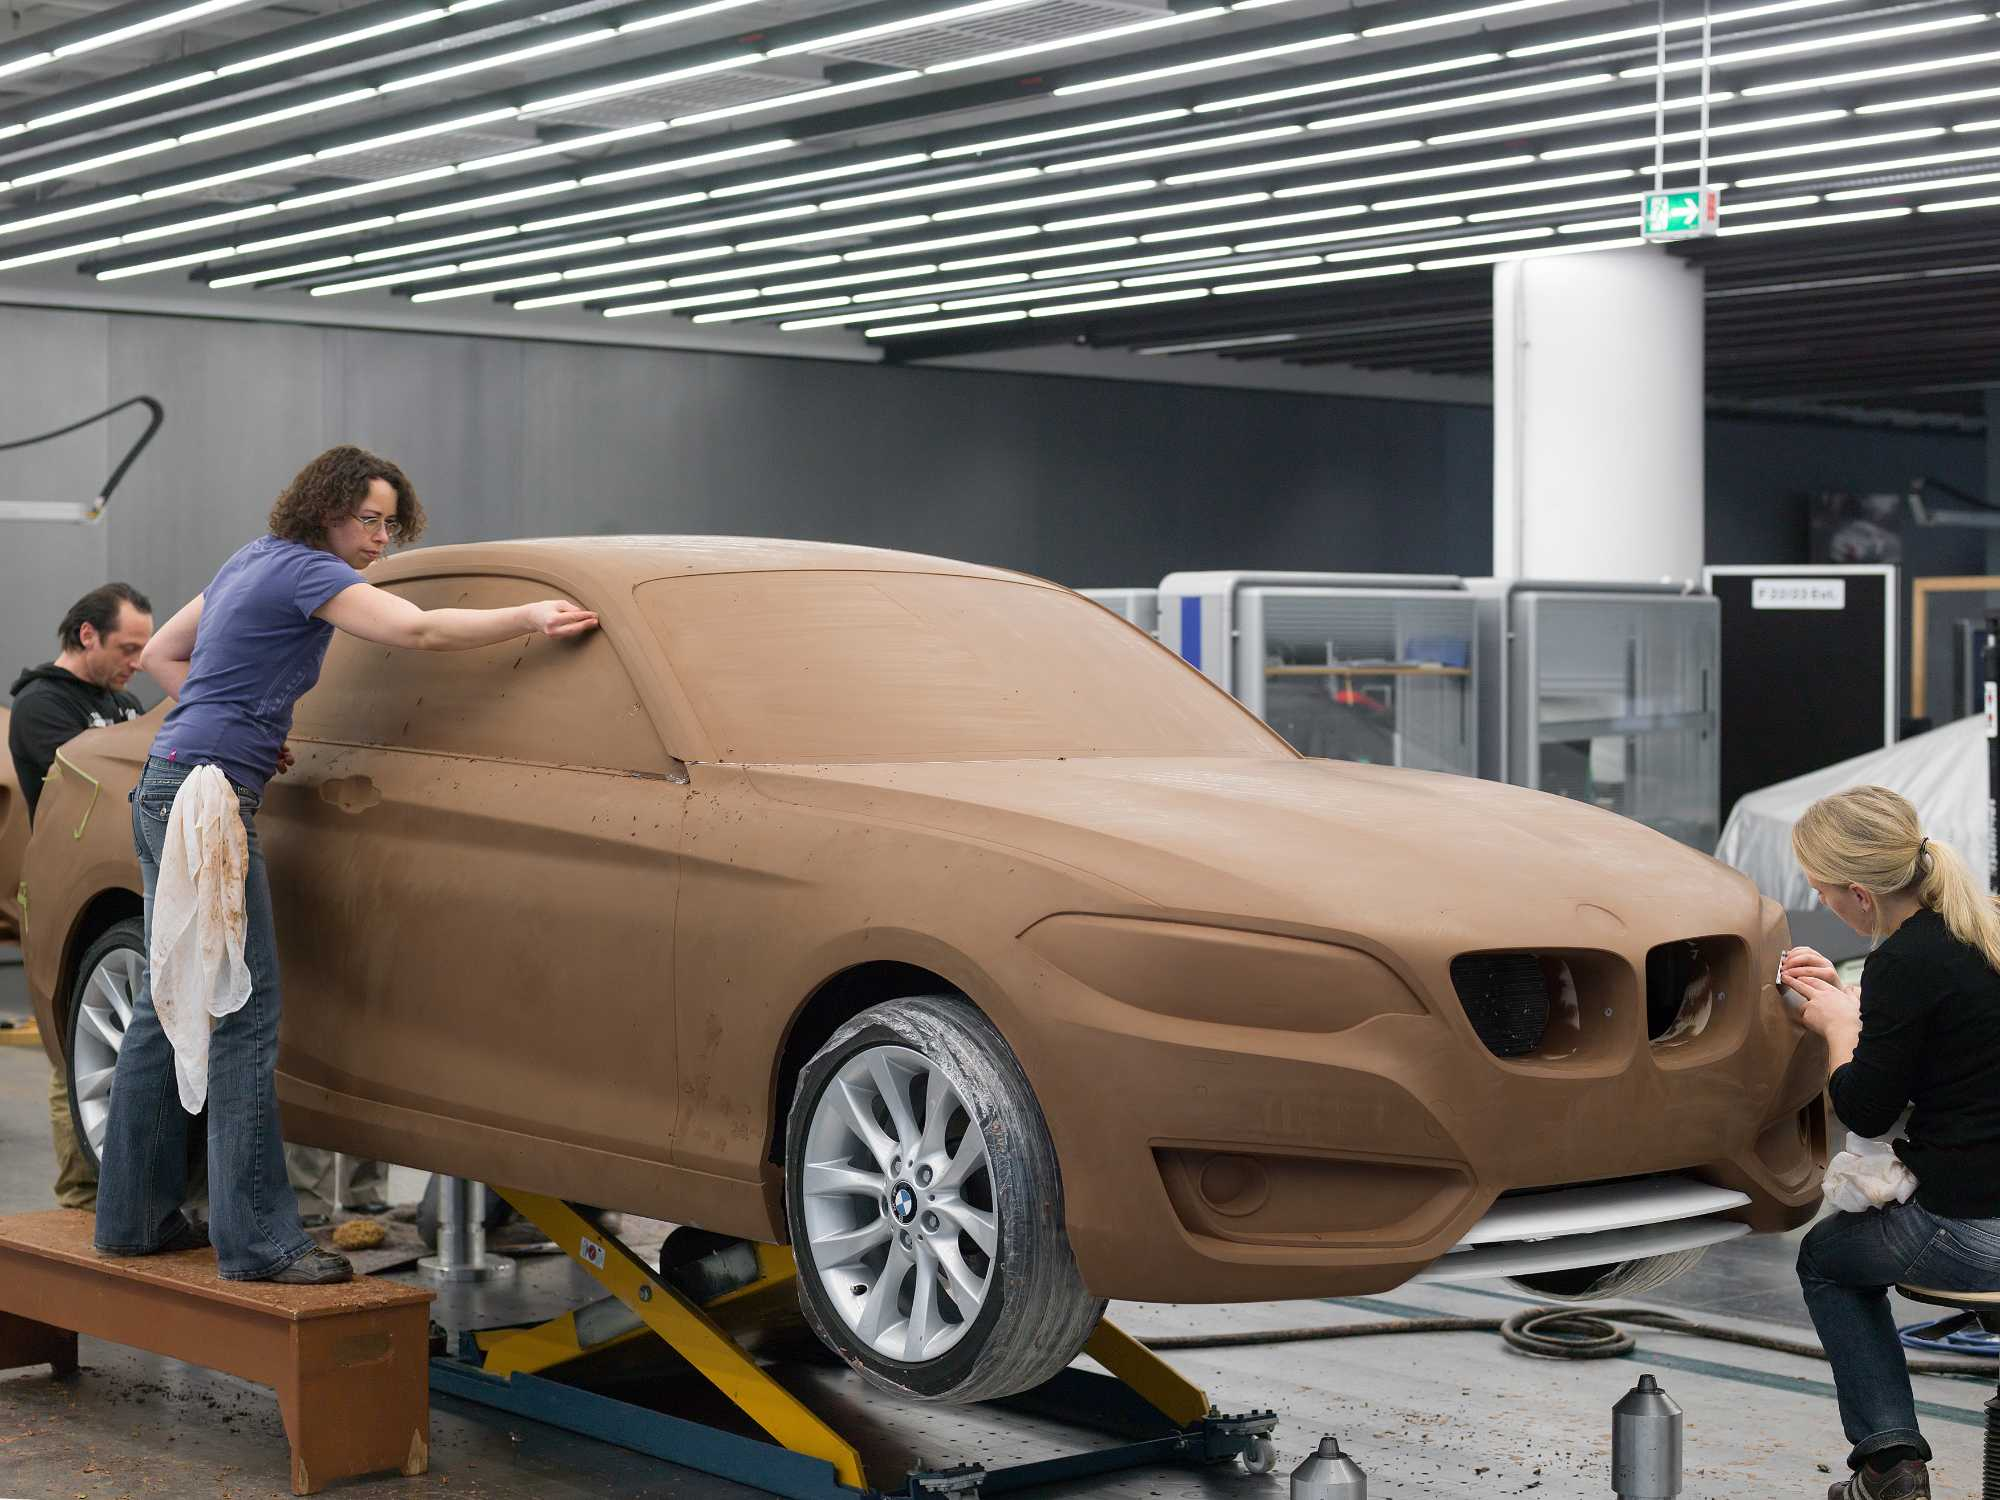 BMW 2 Series Coupe Design process, Clay modelling (10/2013)